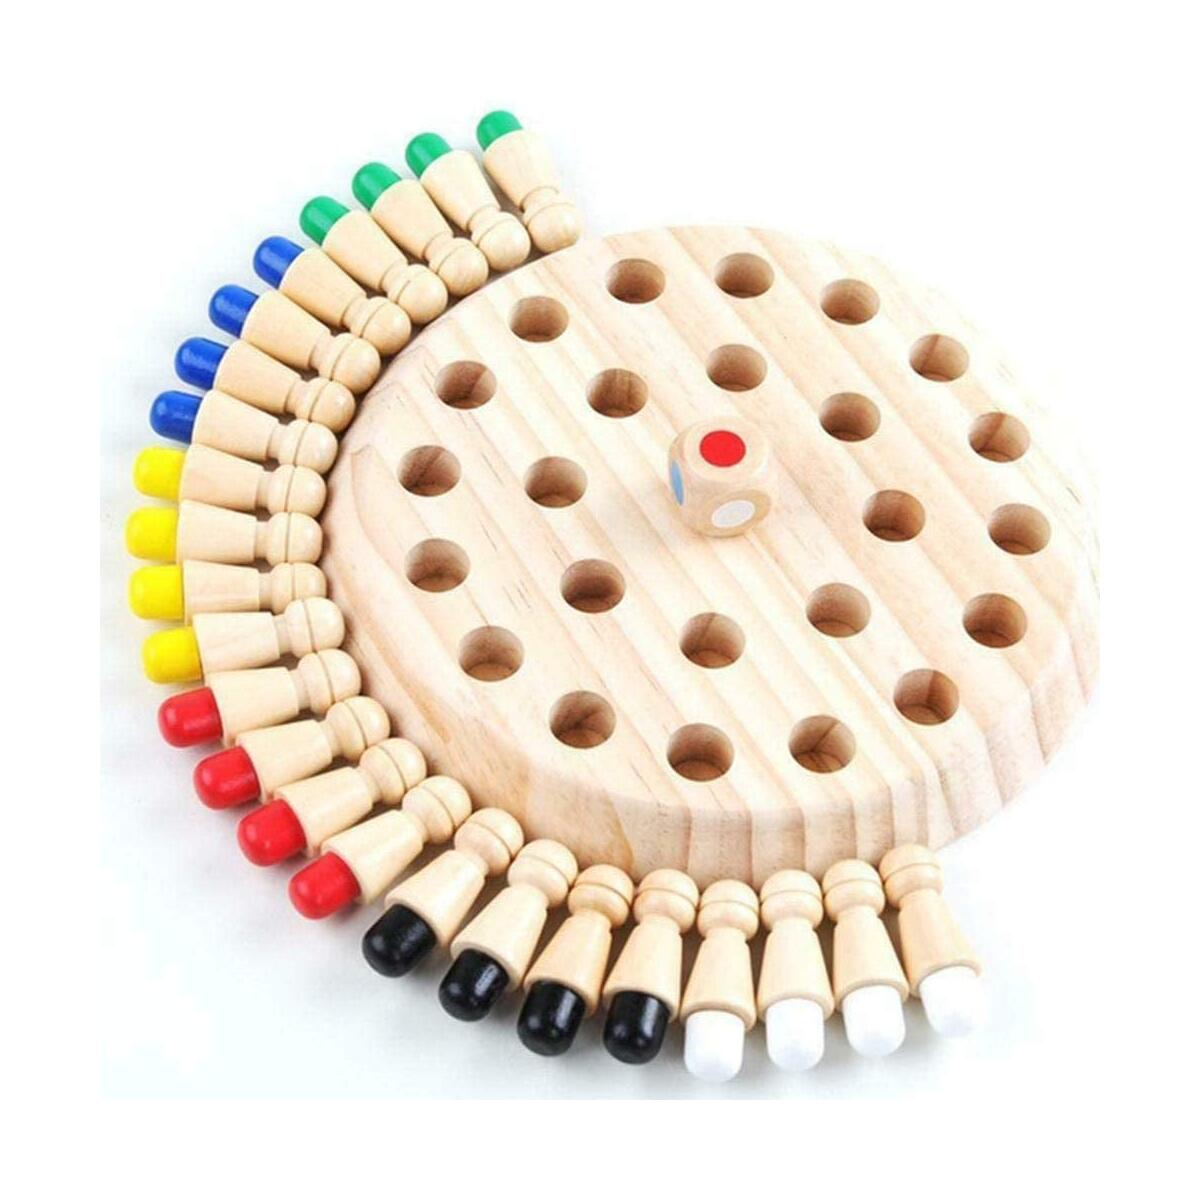 ROHSCE Memory Match - Kid Wooden Stick Chess Game.A good color wooden Memory Matchstick Chess Game, Educational Intelligent Logic Game ,Cognitive Ability Toy for 3-7 Years Old Children.